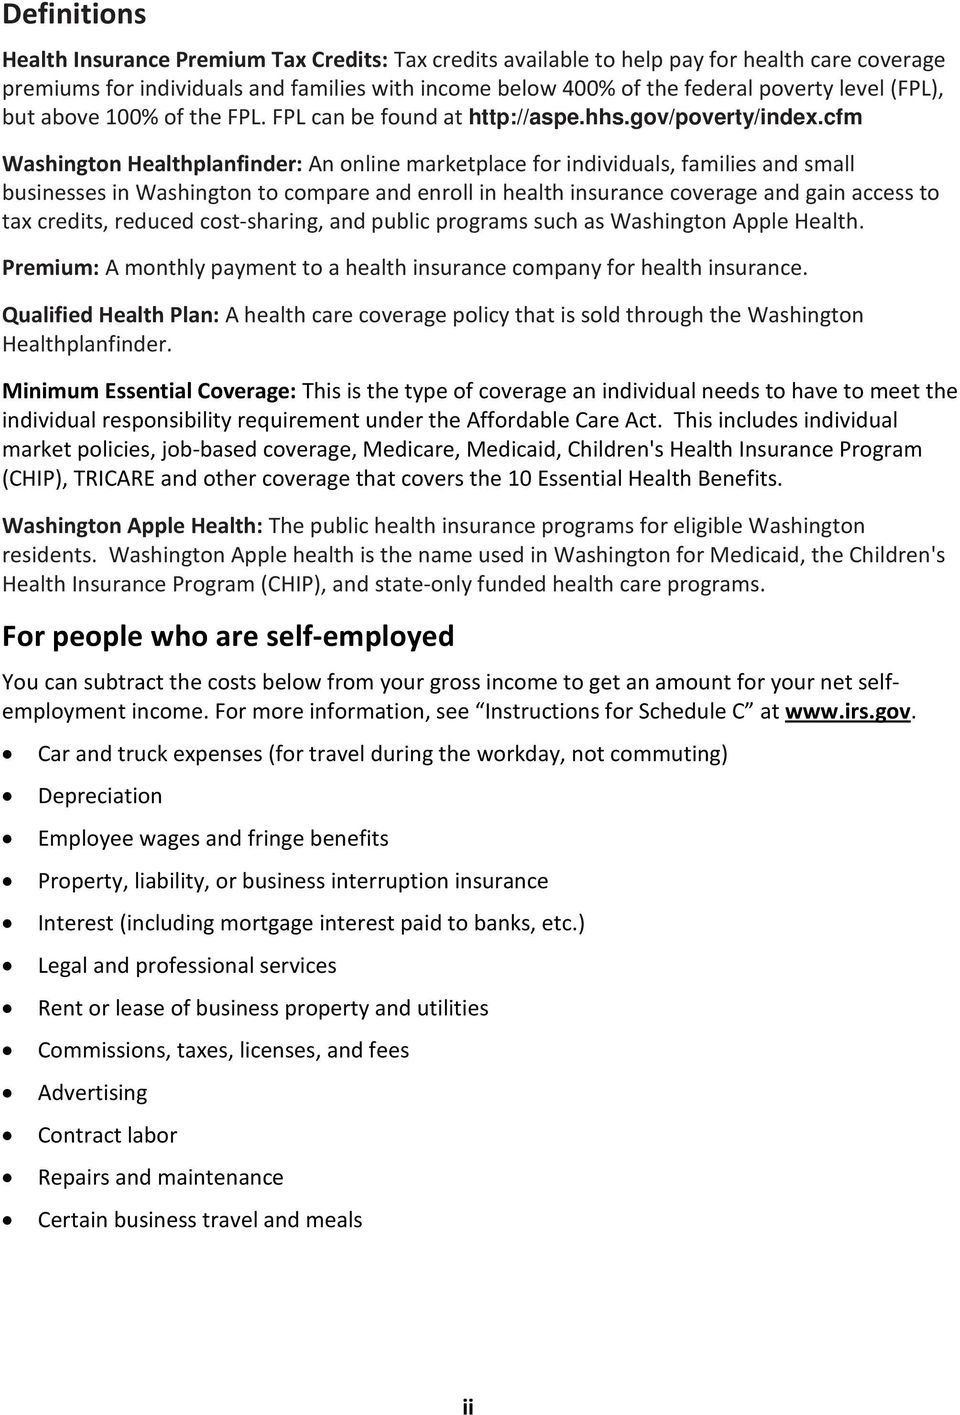 cfm Washington Healthplanfinder: An online marketplace for individuals, families and small businesses in Washington to compare and enroll in health insurance coverage and gain access to tax credits,